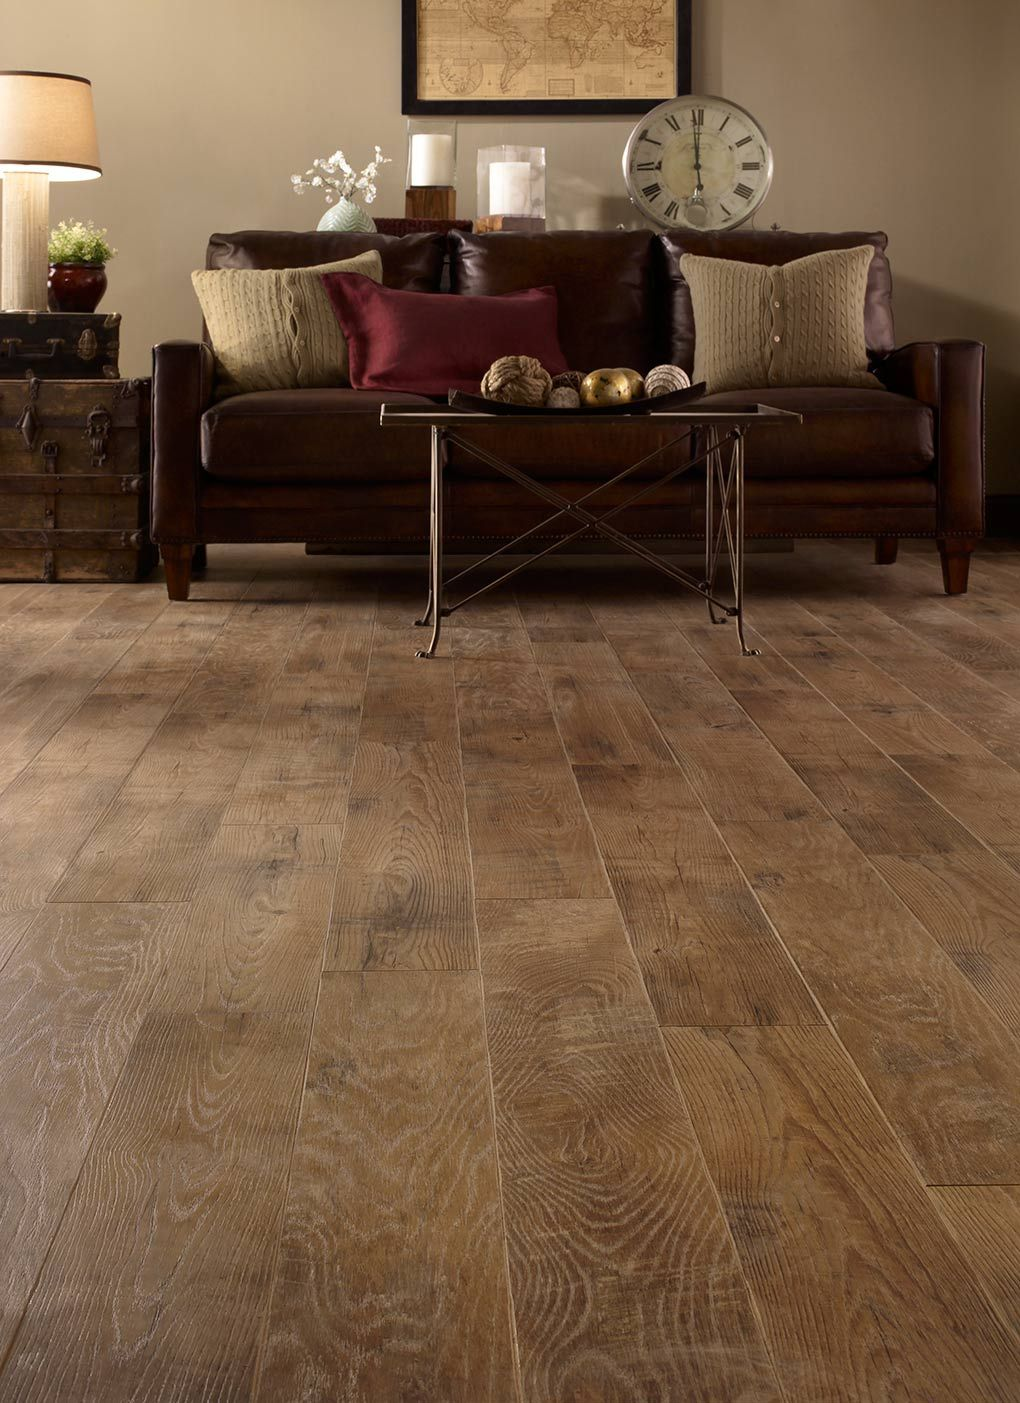 Hardwood Flooring End Of The Roll Mannington laminate